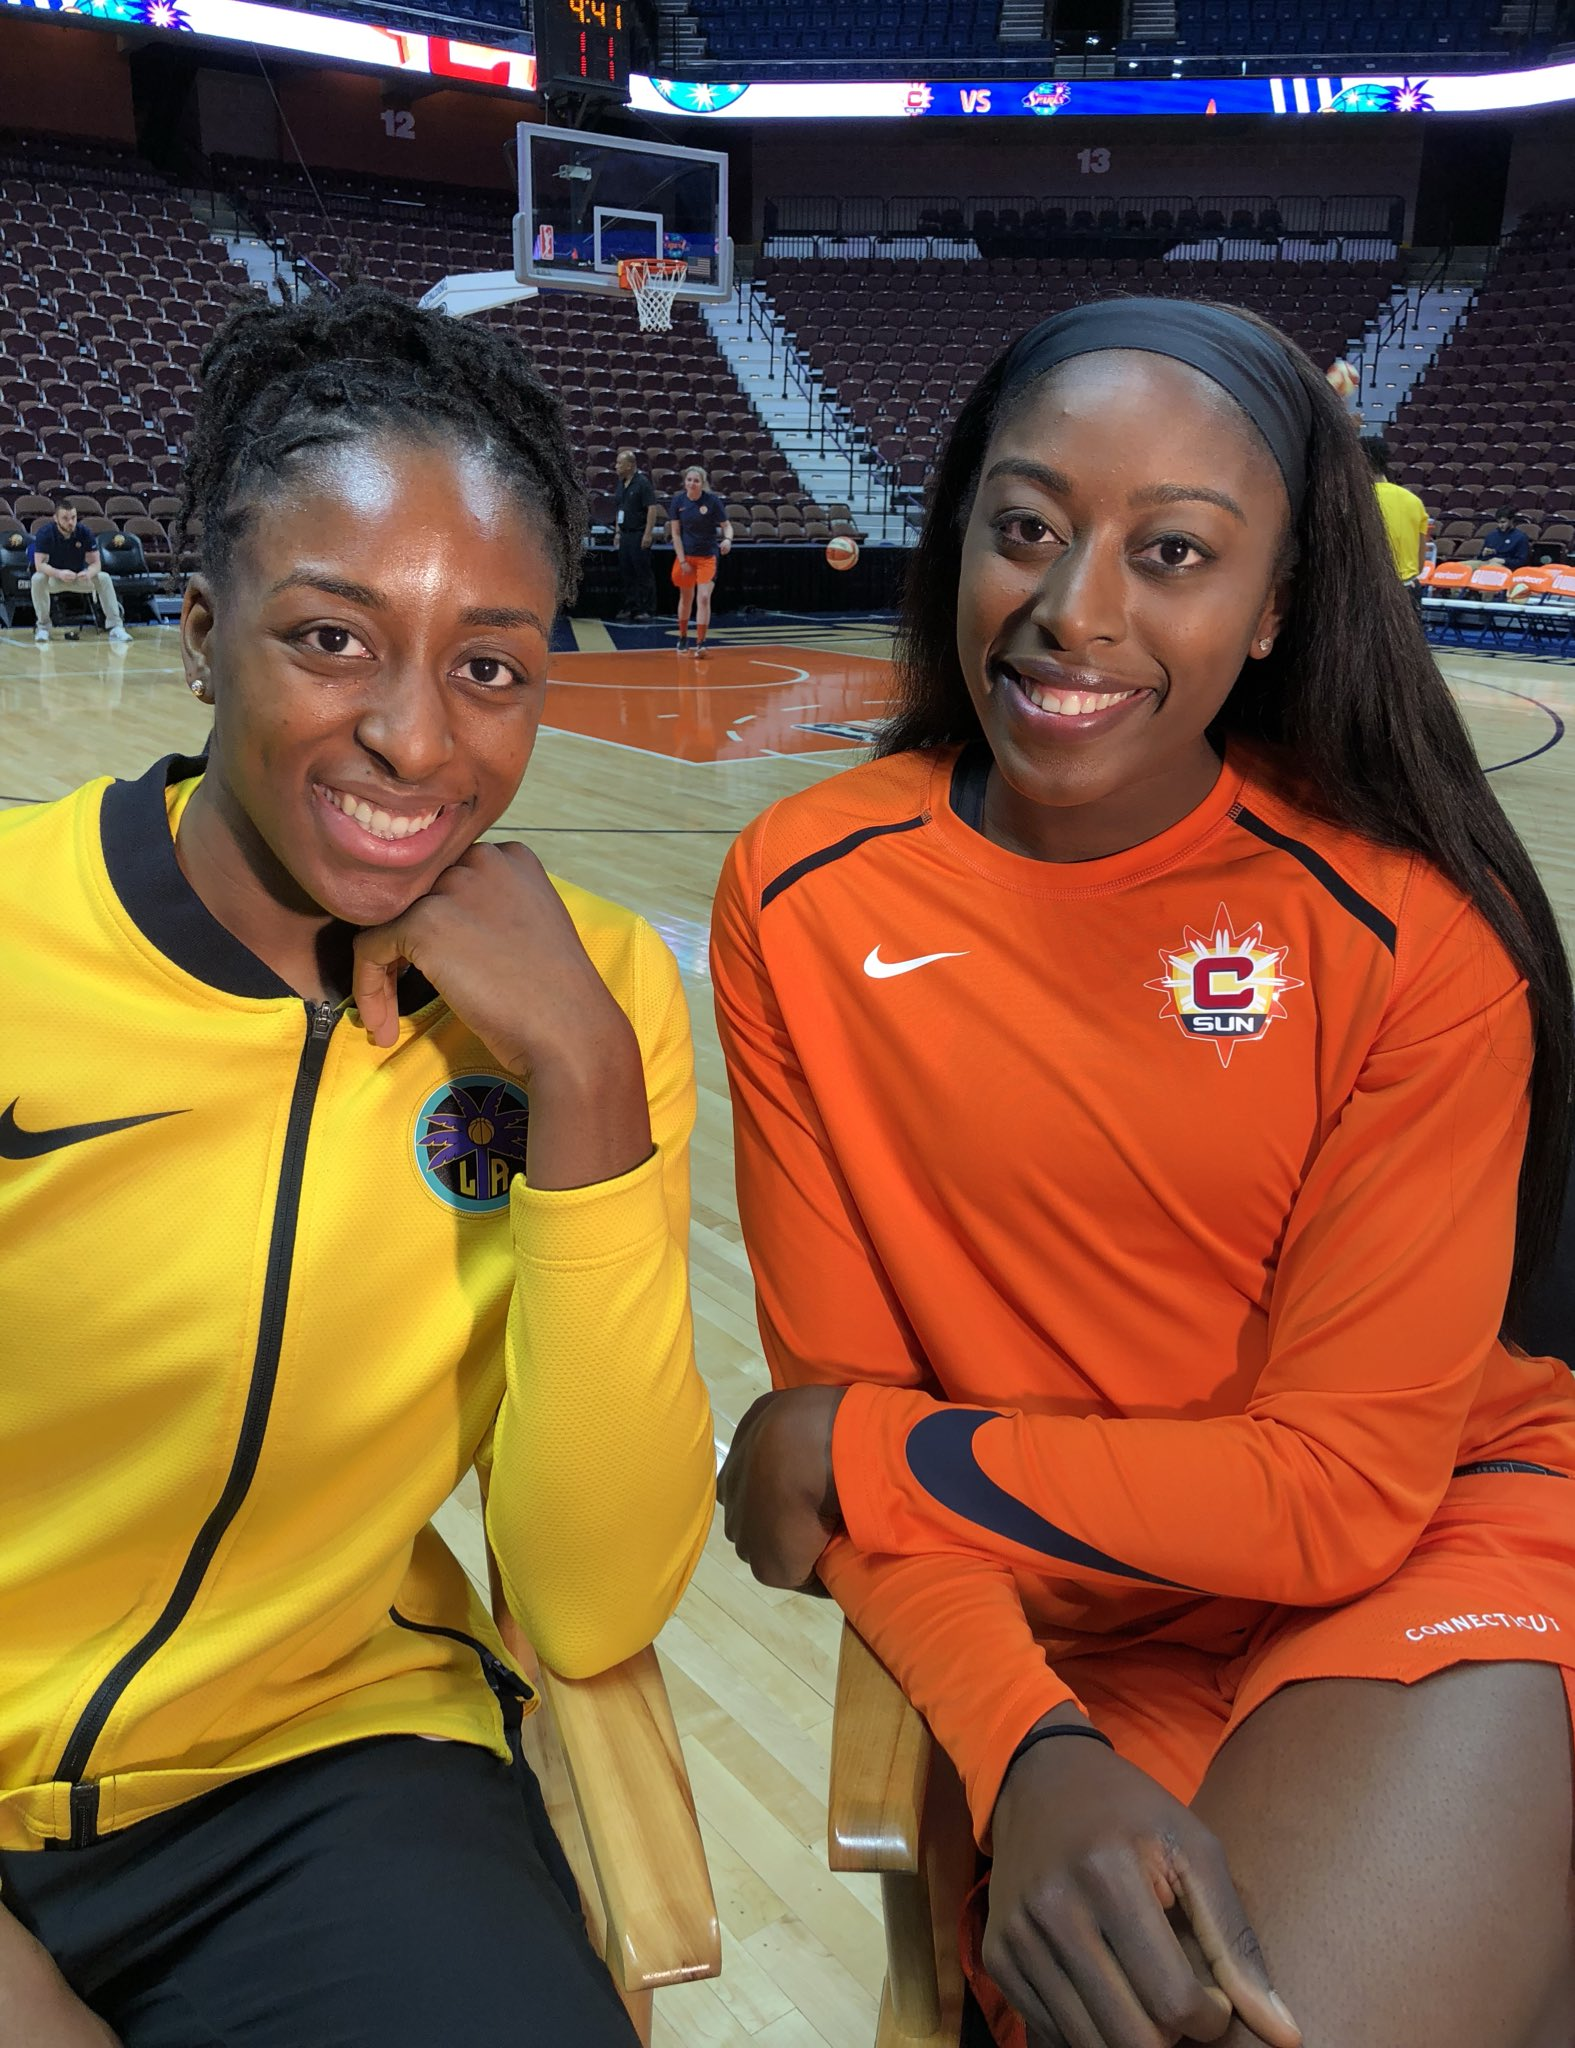 Ogwumike x2.  Nneka & Chiney face off in the #WNBA for the 6th time TONIGHT on ESPN 2 at 7pm/et. https://t.co/TWHenIMg8k